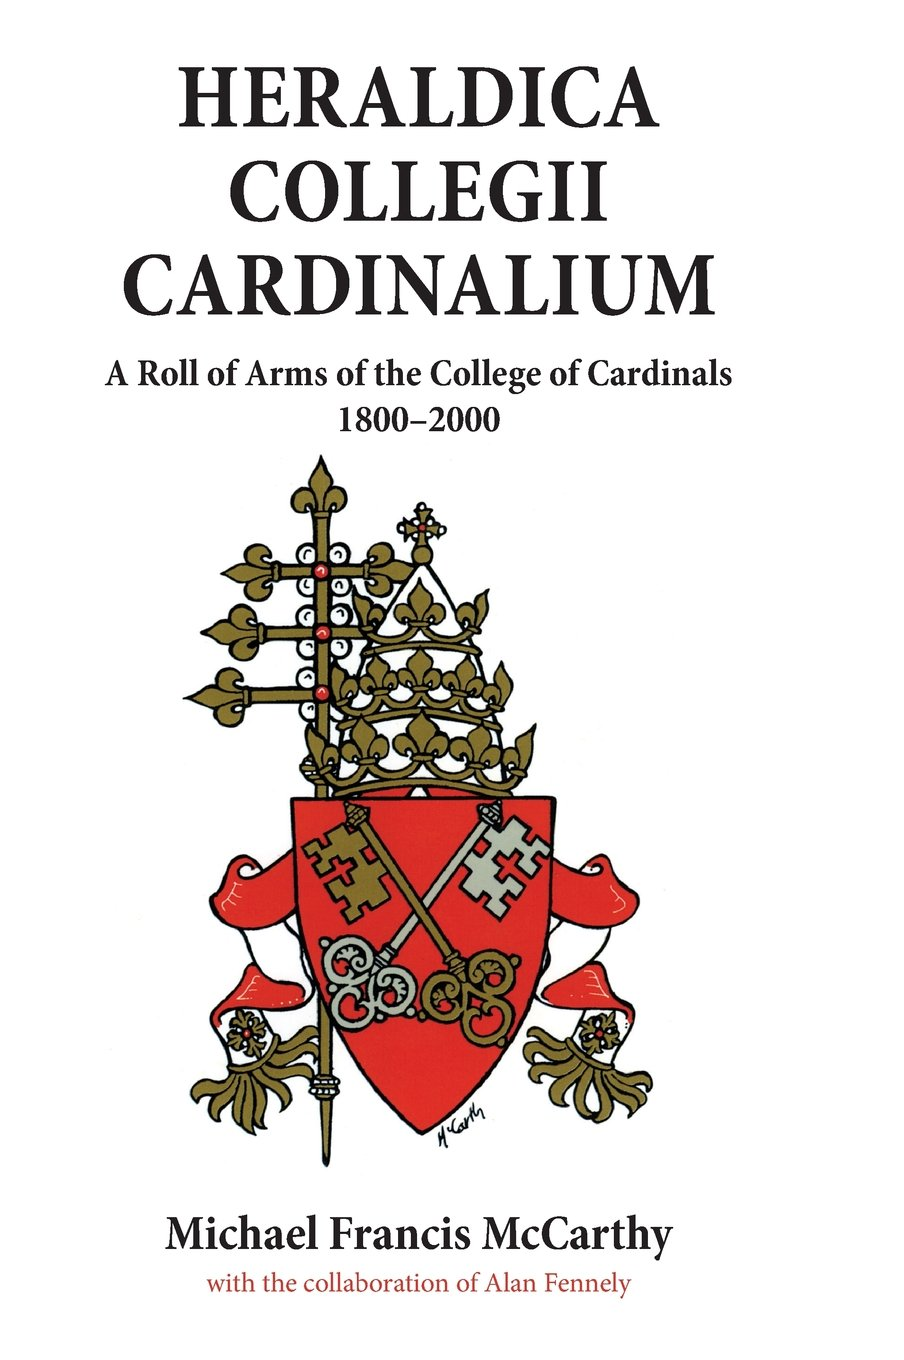 Download Heraldica Collegii Cardinalium, volume 2: A Roll of Arms of the College of Cardinals, 1800 - 2000 (Heraldica Collegii Carnialium: A Roll of Arms of the College of Cardinals) pdf epub